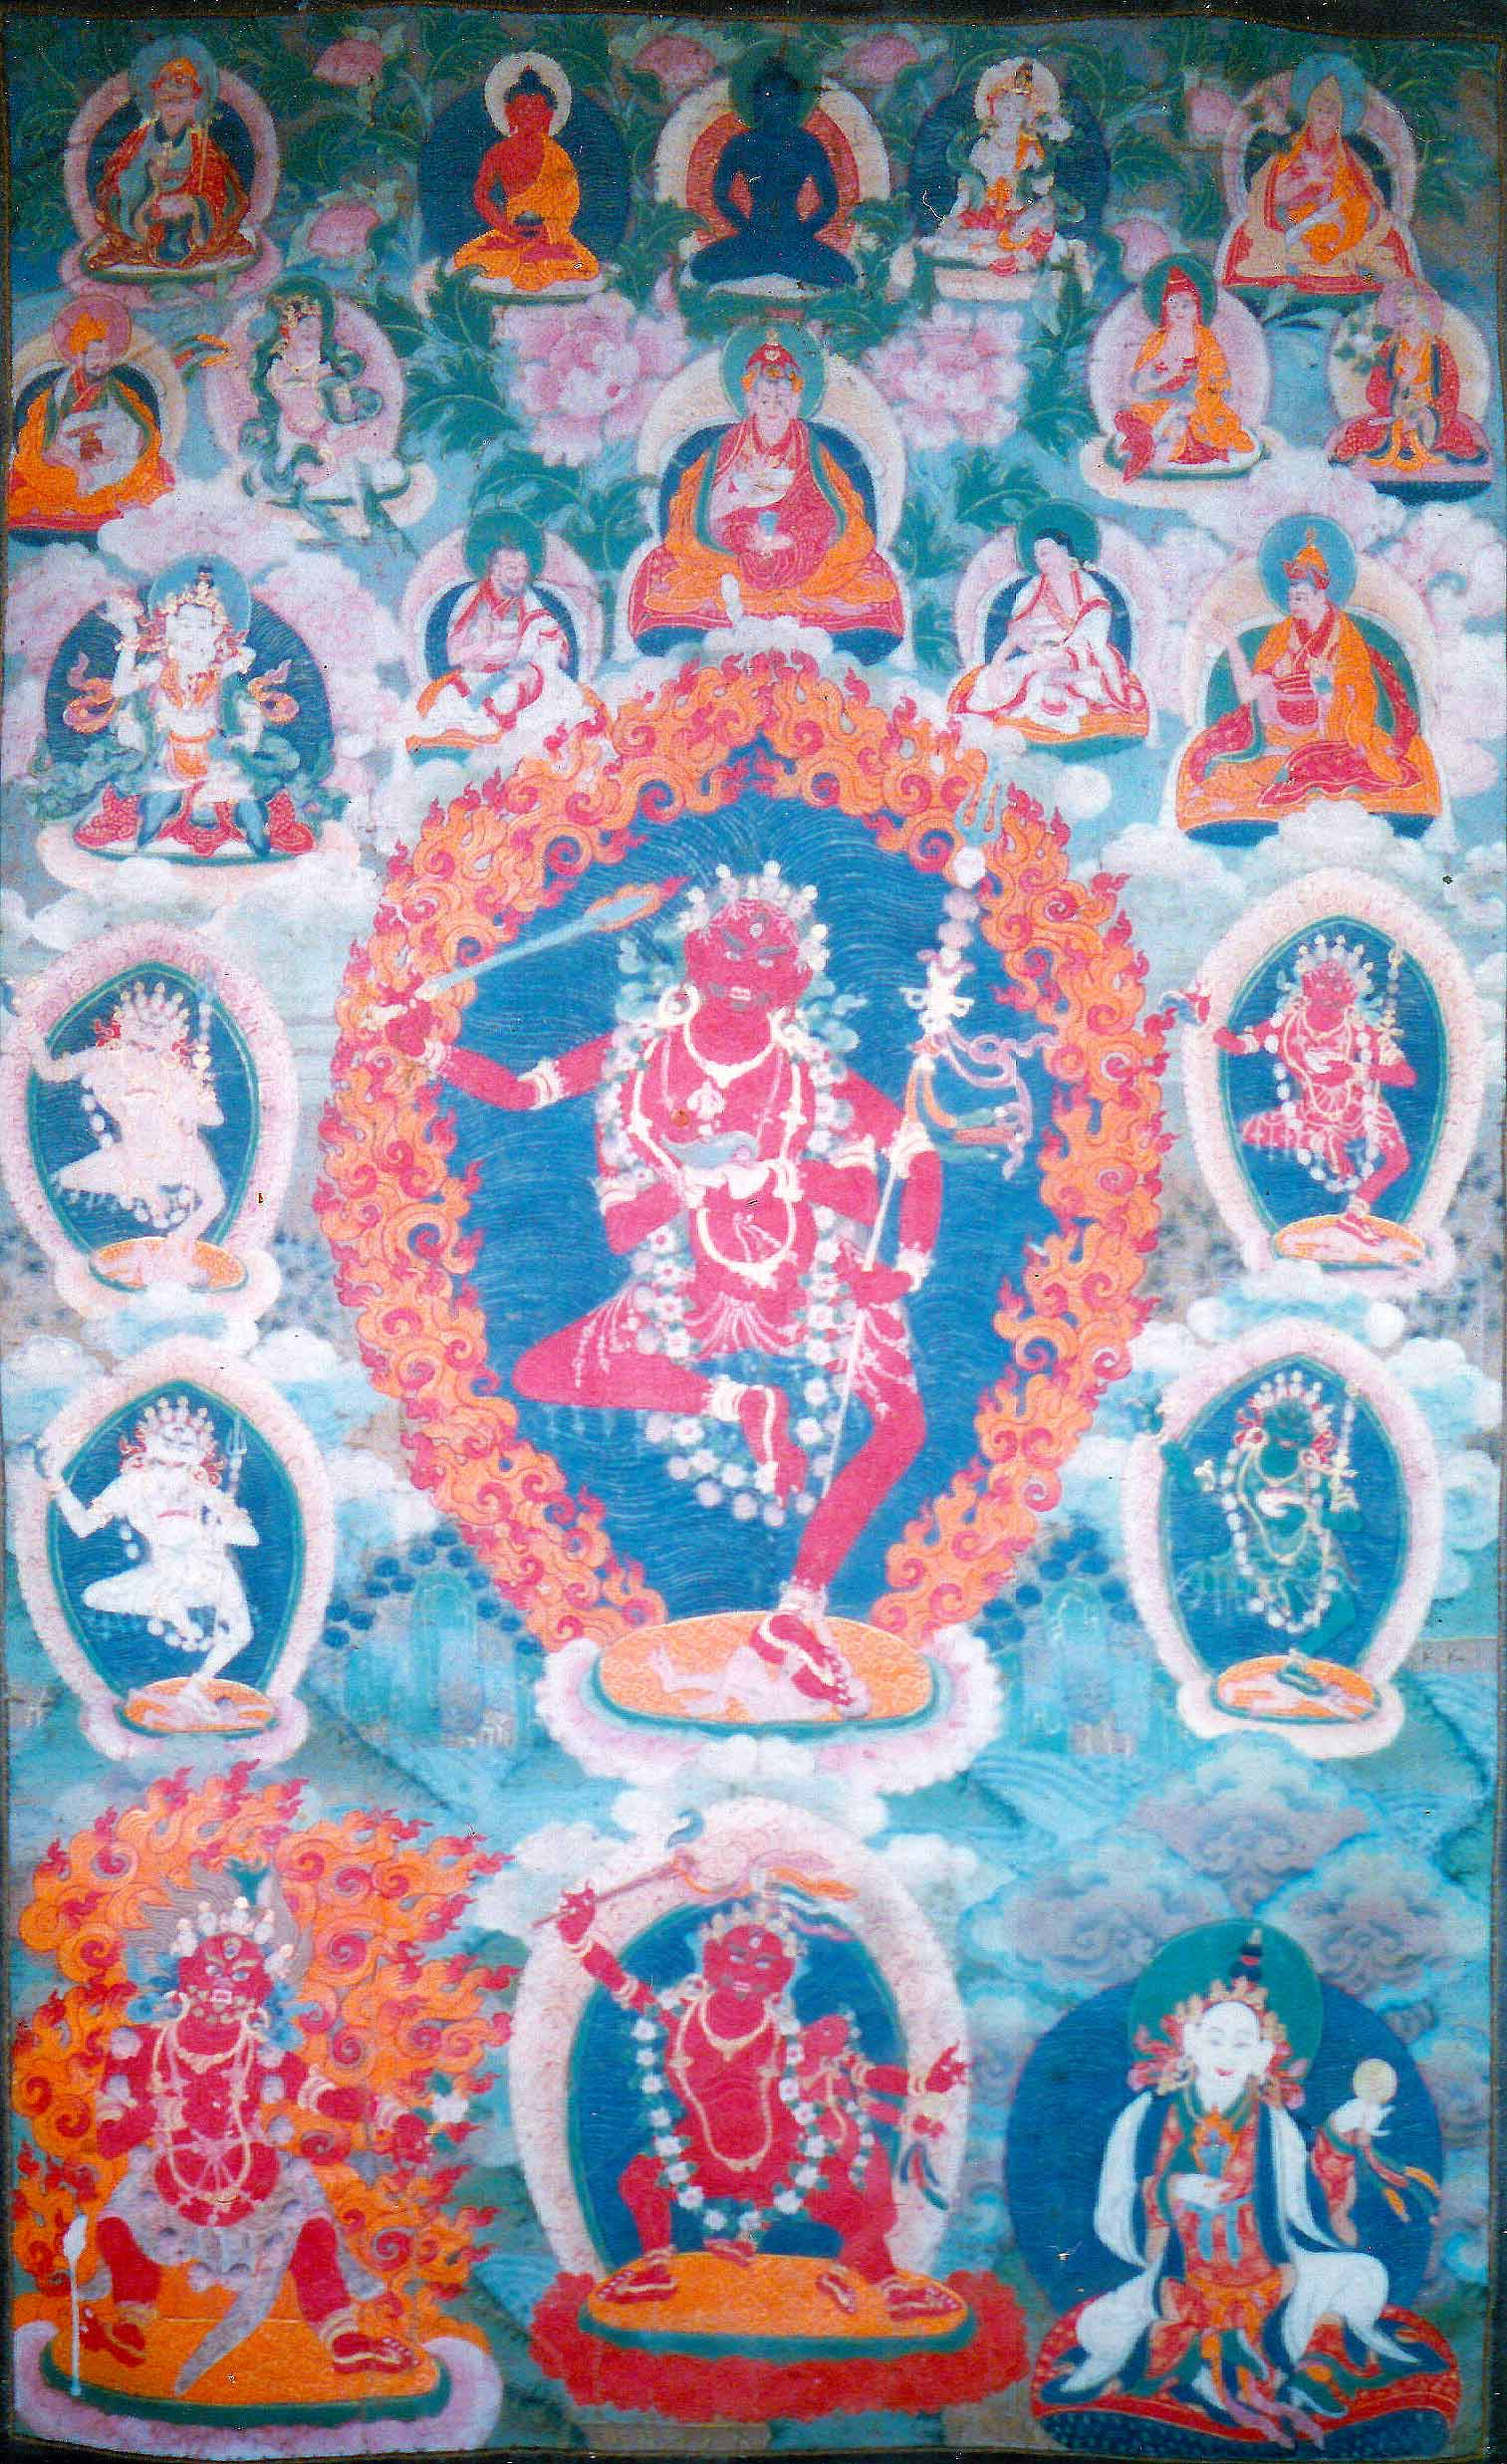 Khandro Sangwa Yeshe is the main cycle of teachings from the Lelung lineage. Concealed by Guru Padmasambhava, these teachings were later rediscovered by the Fifth Lelung Rinpoche who taught them widely